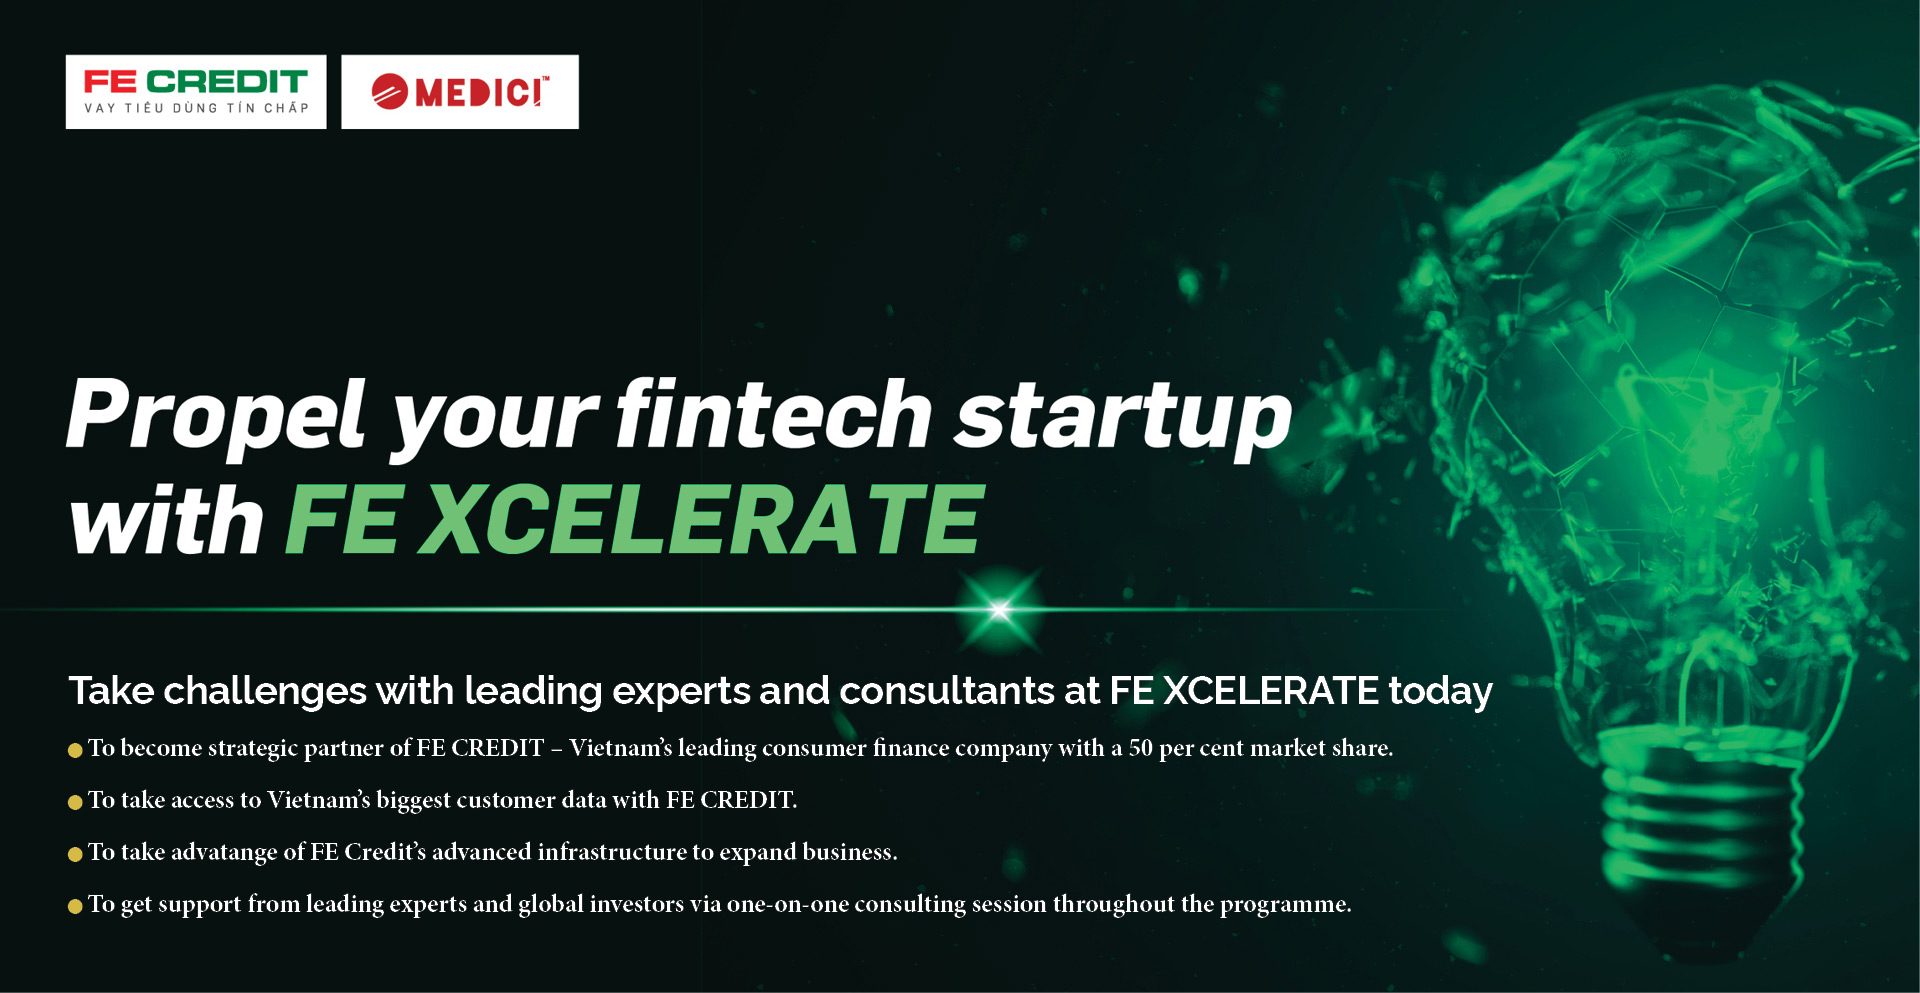 Reaching out for fintechs helps FE Credit fly higher 7